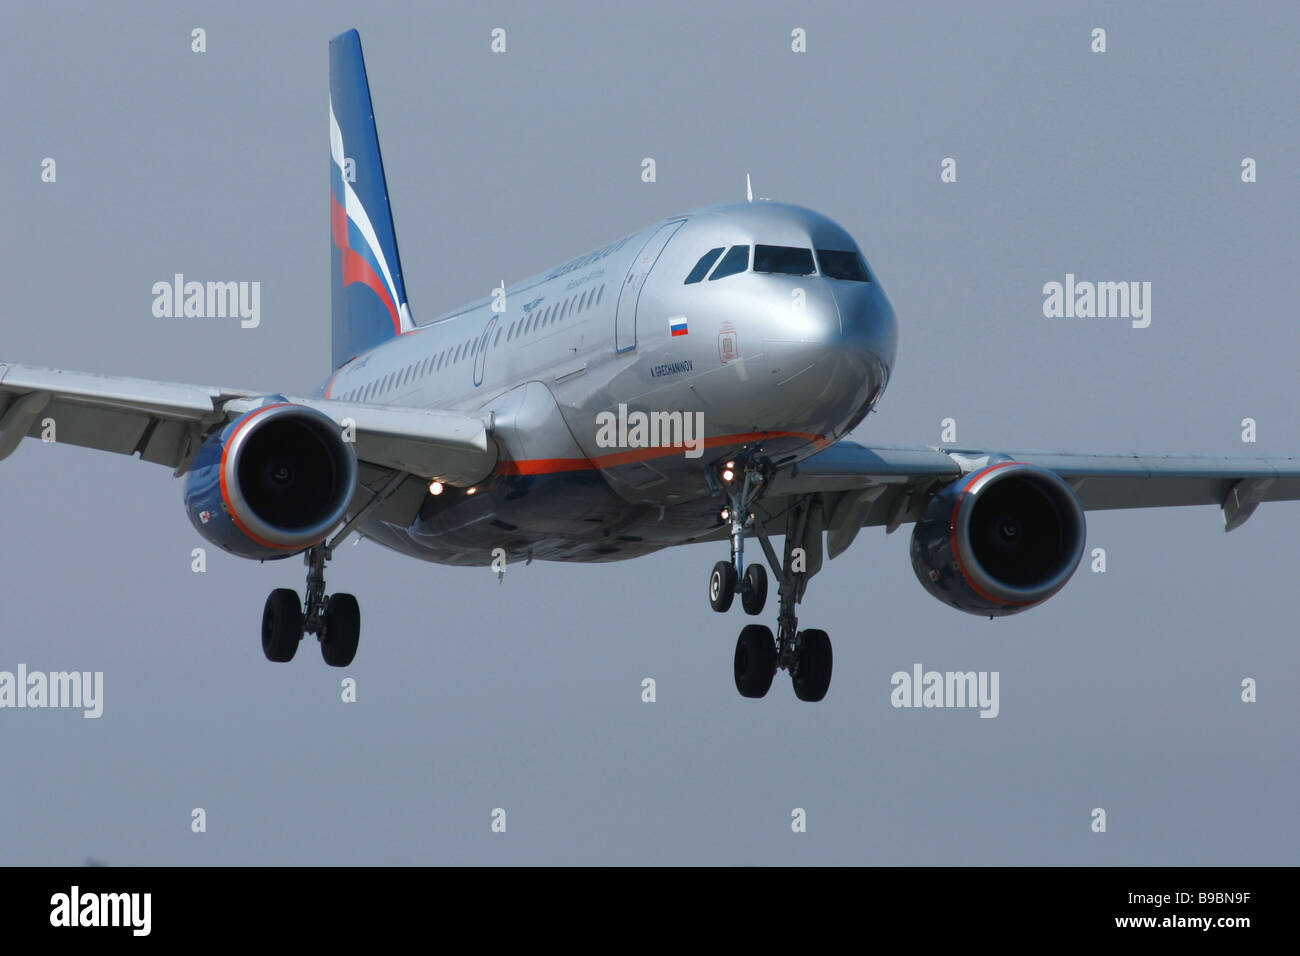 An Aeroflot Airlines Airbus A320 passenger airliner - Stock Image